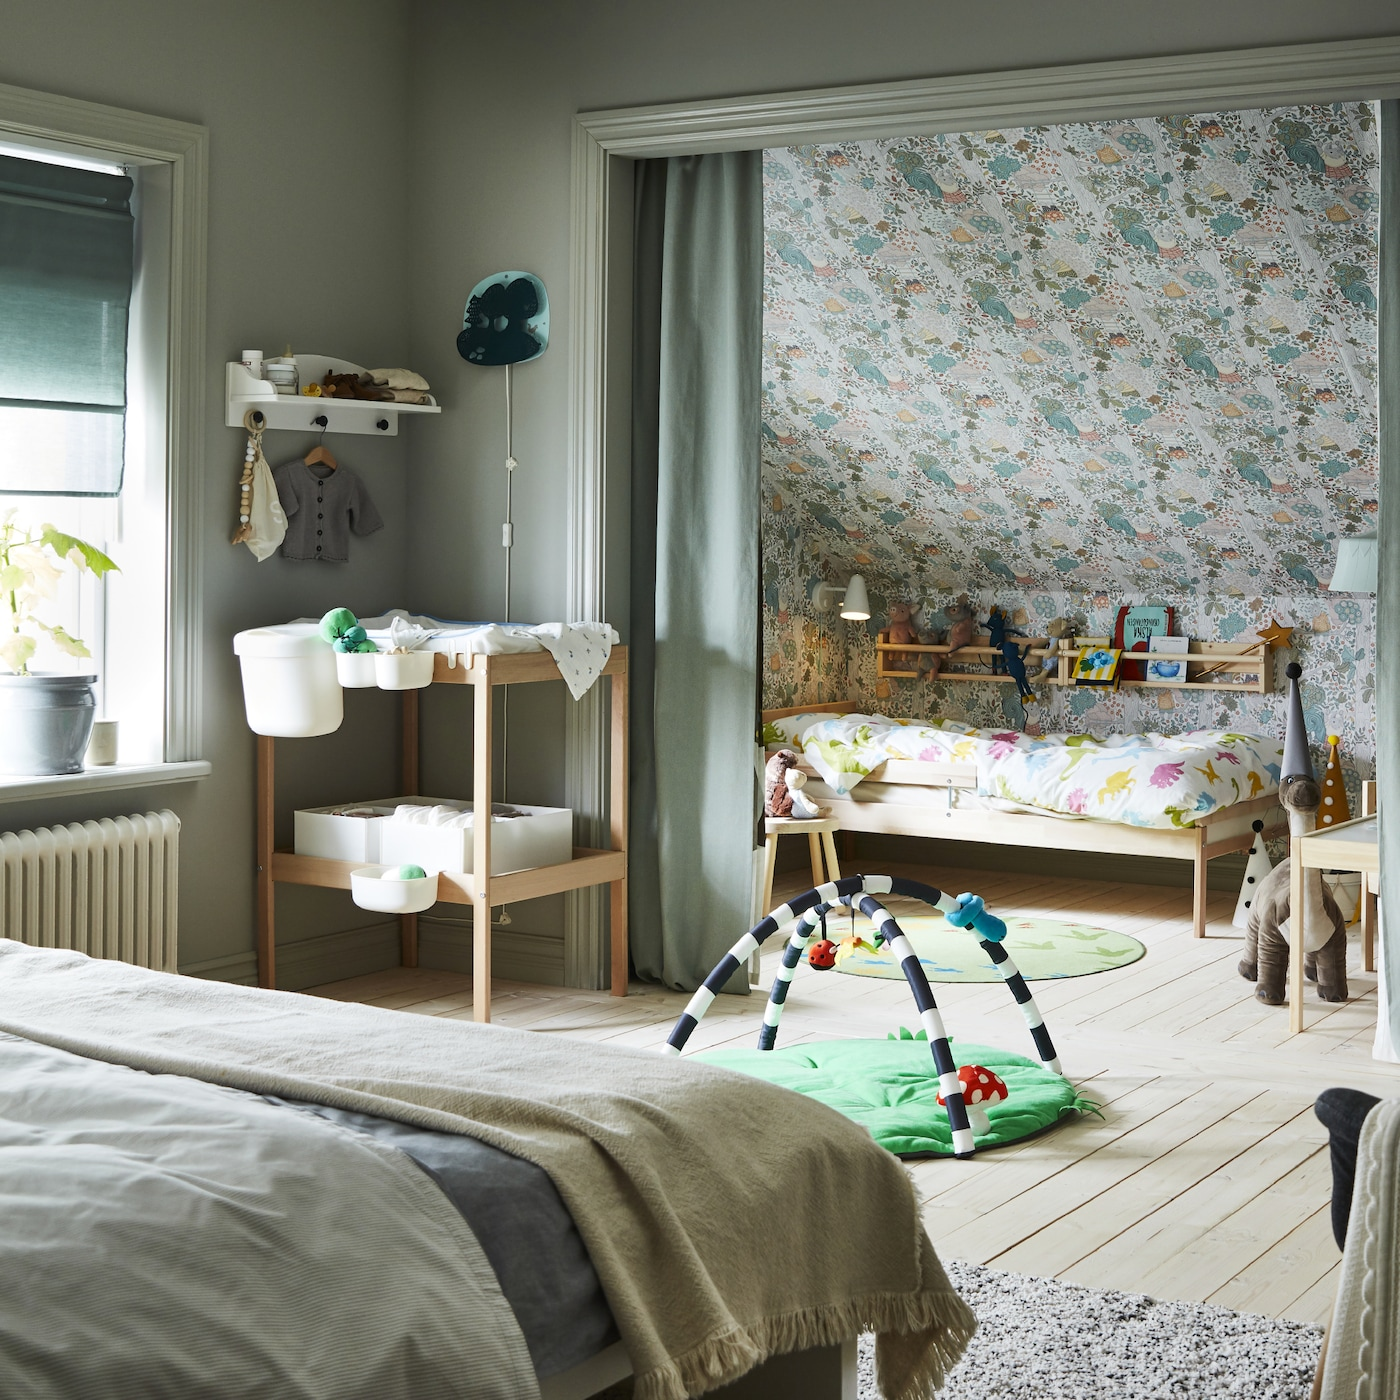 Bedroom with a double bed, a changing table and baby accessories. A children's bed stands in an alcove behind green curtains.